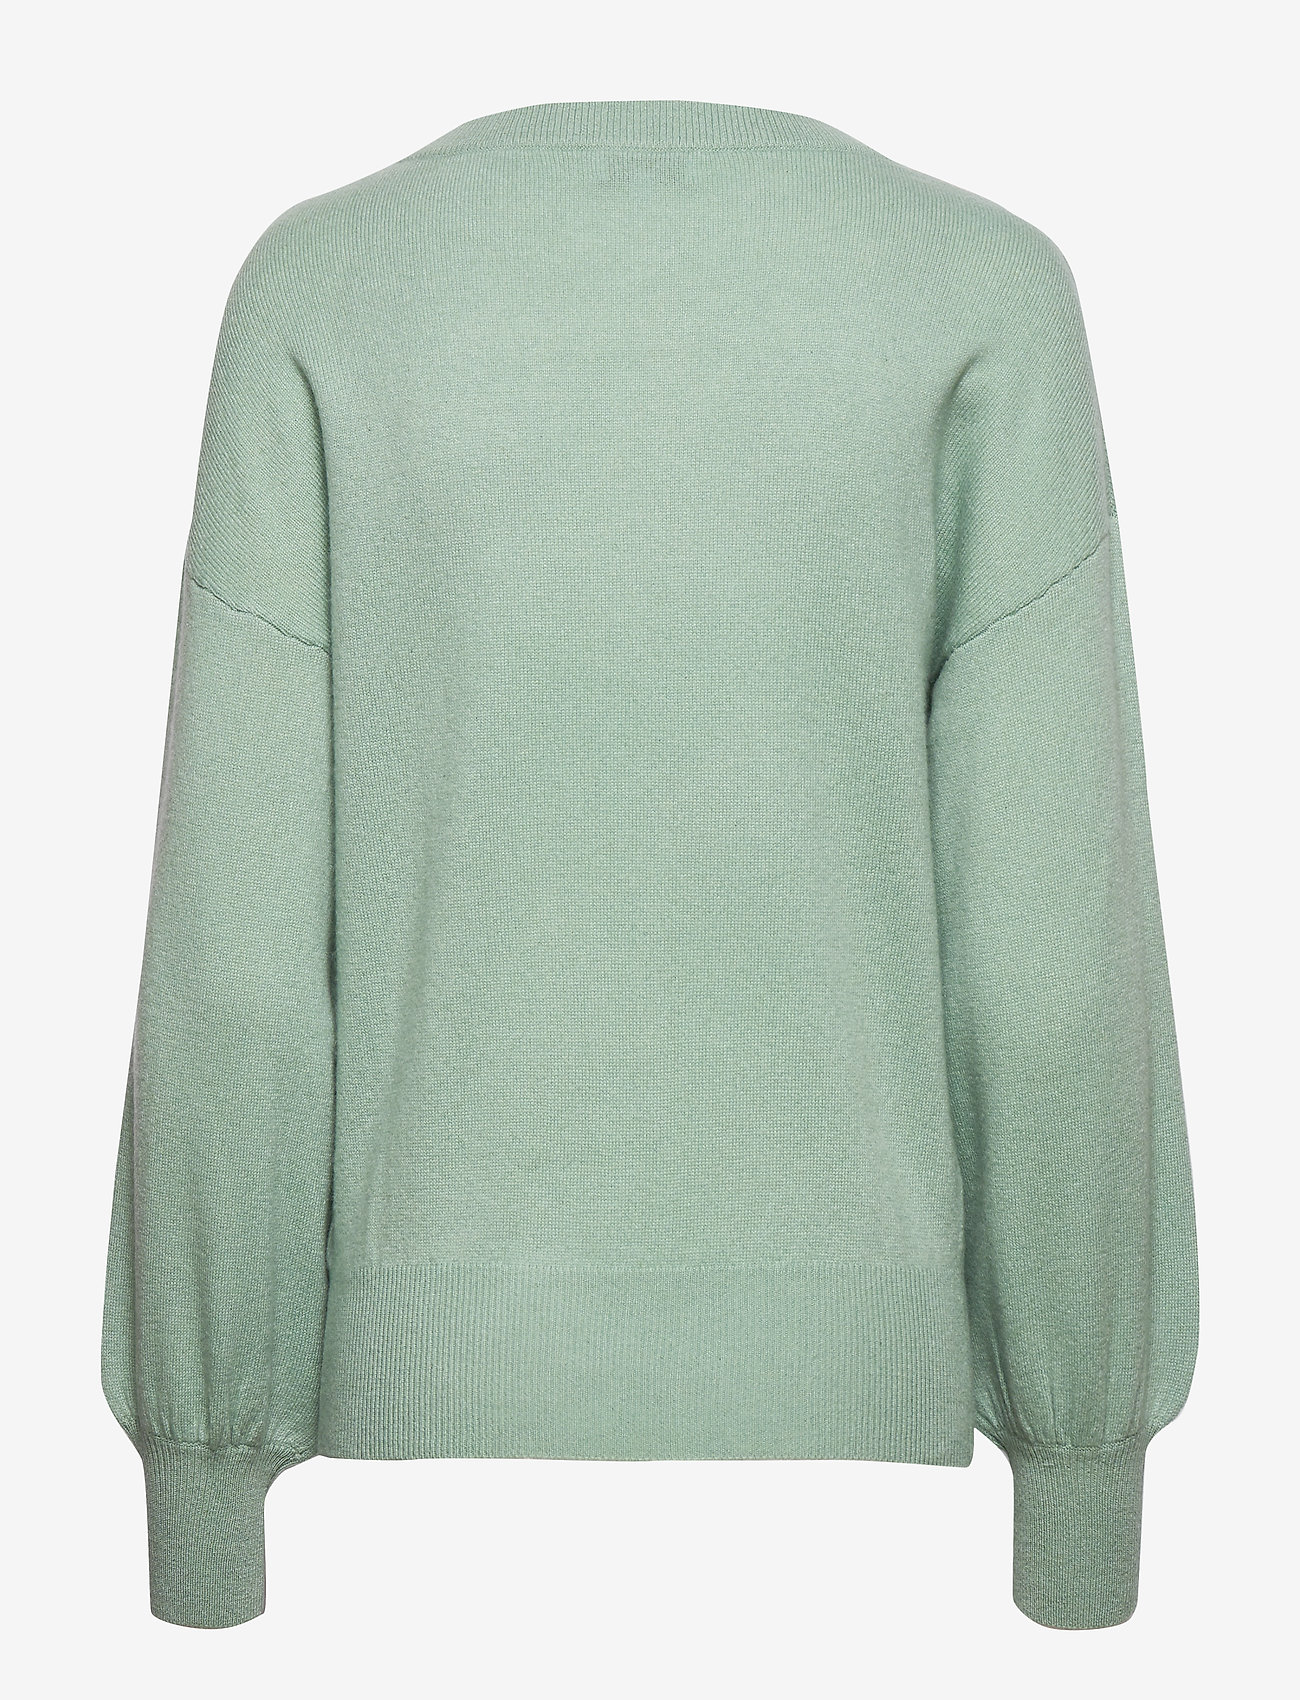 Balloon Sleeve Sweater (Dusty Green) - Davida Cashmere 2rlRgP